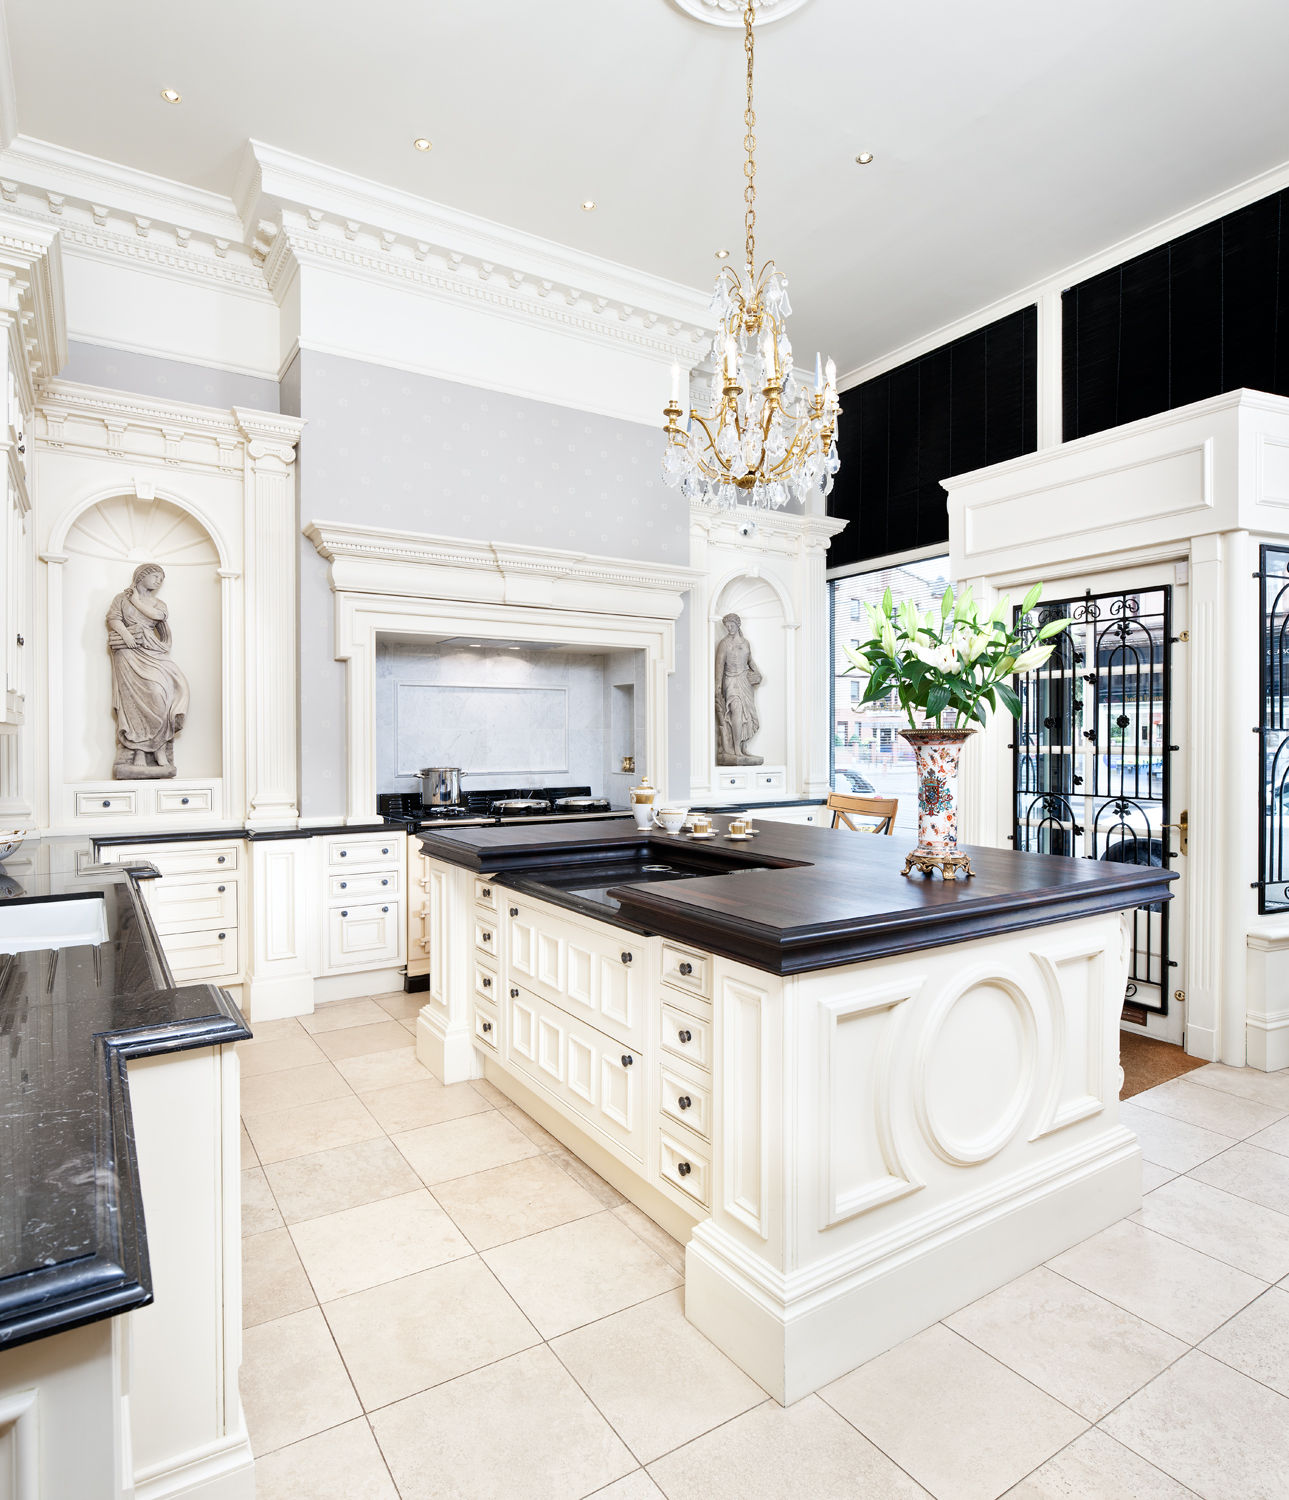 Christian Clive Kitchen Cabinets